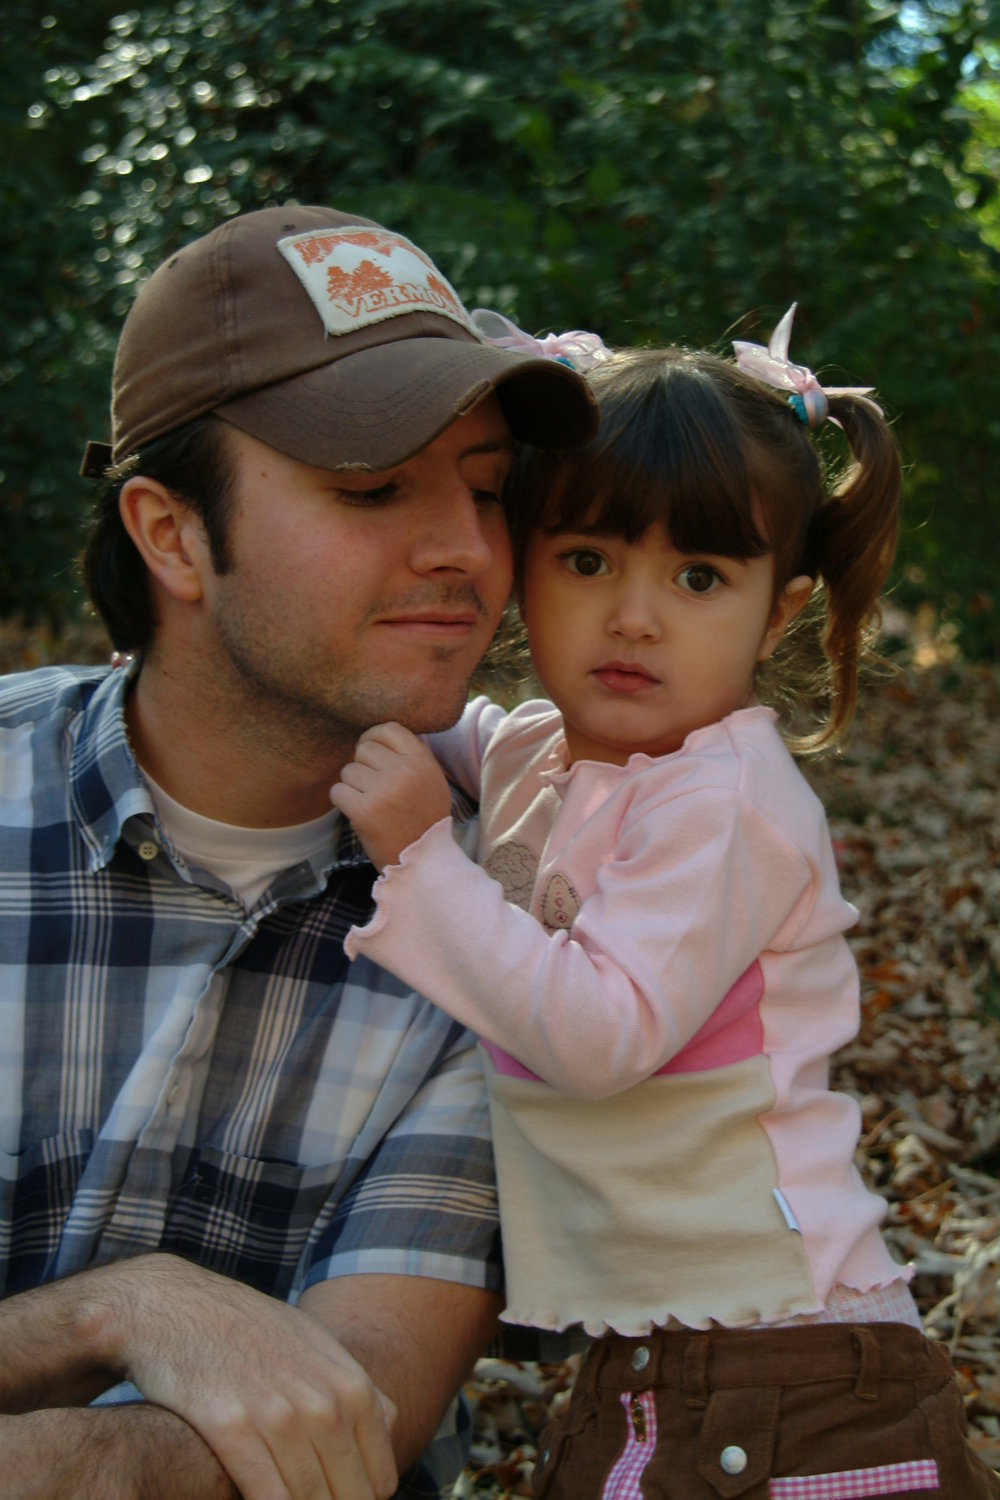 Sweet innocence. (Reston, VA; Oct 2005)